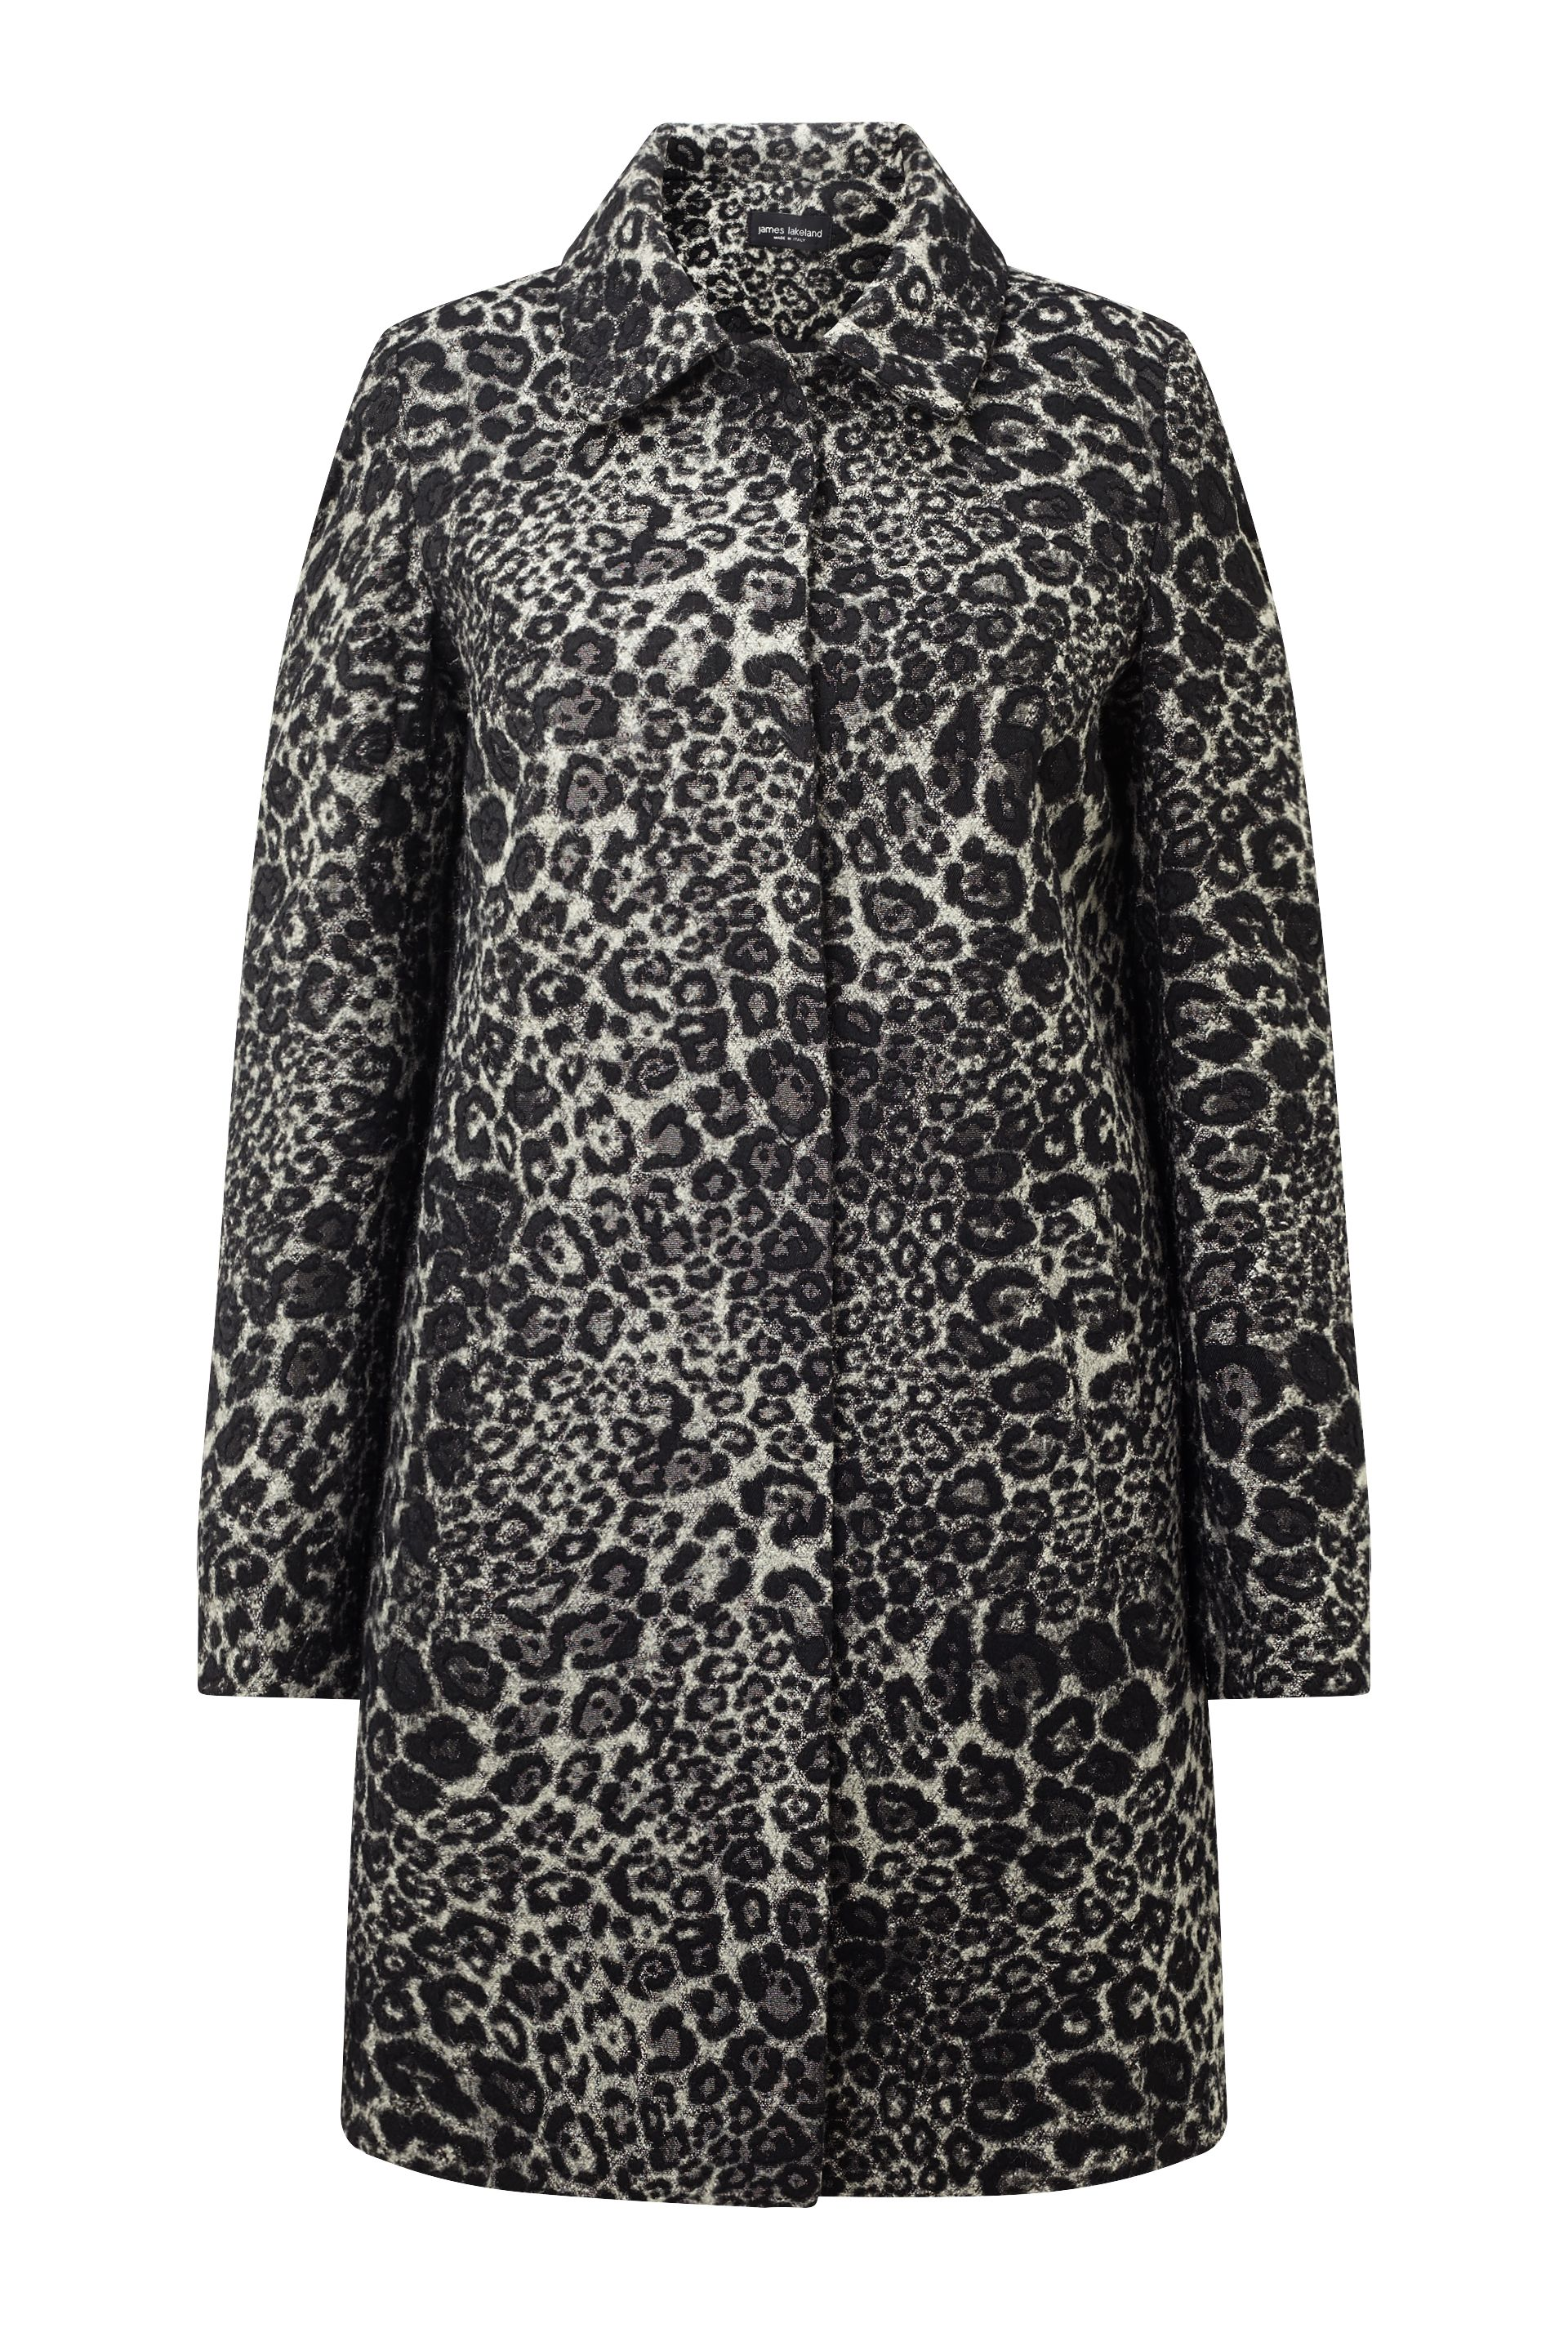 James Lakeland Leopard Coat, Black